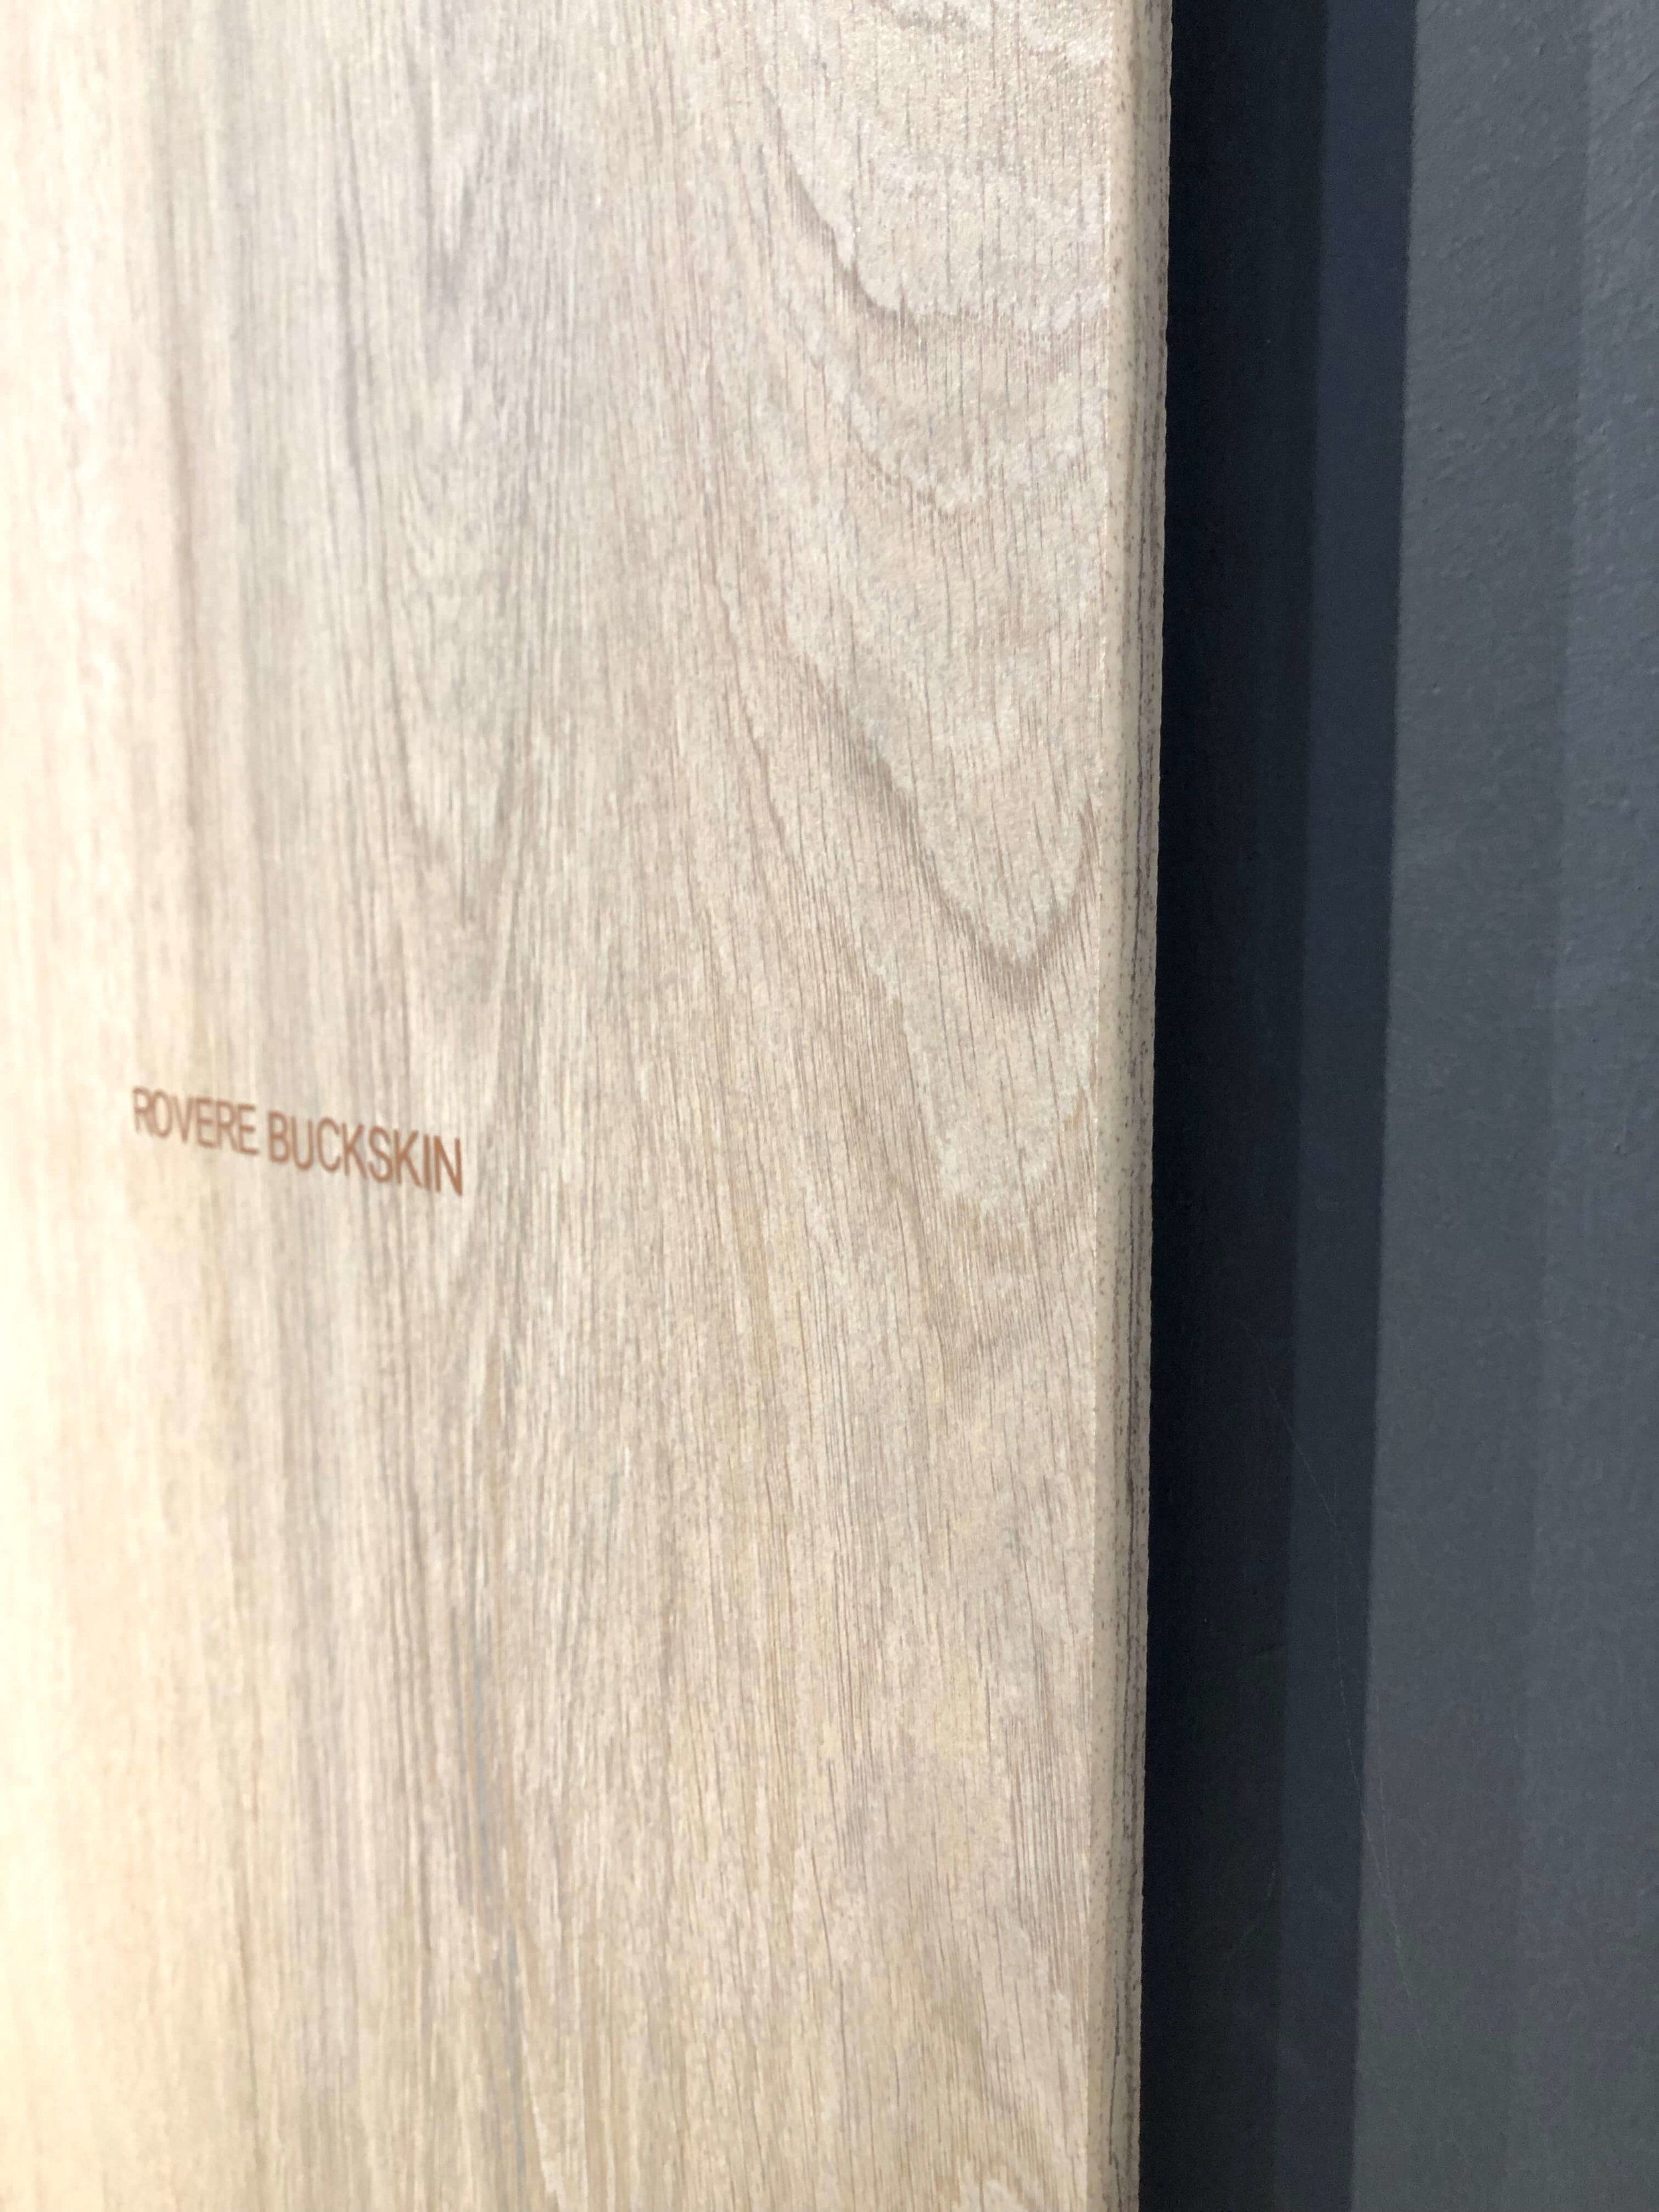 Wood look porcelain slab from Sapienstone | KBIS 2019 Surfaces Trends